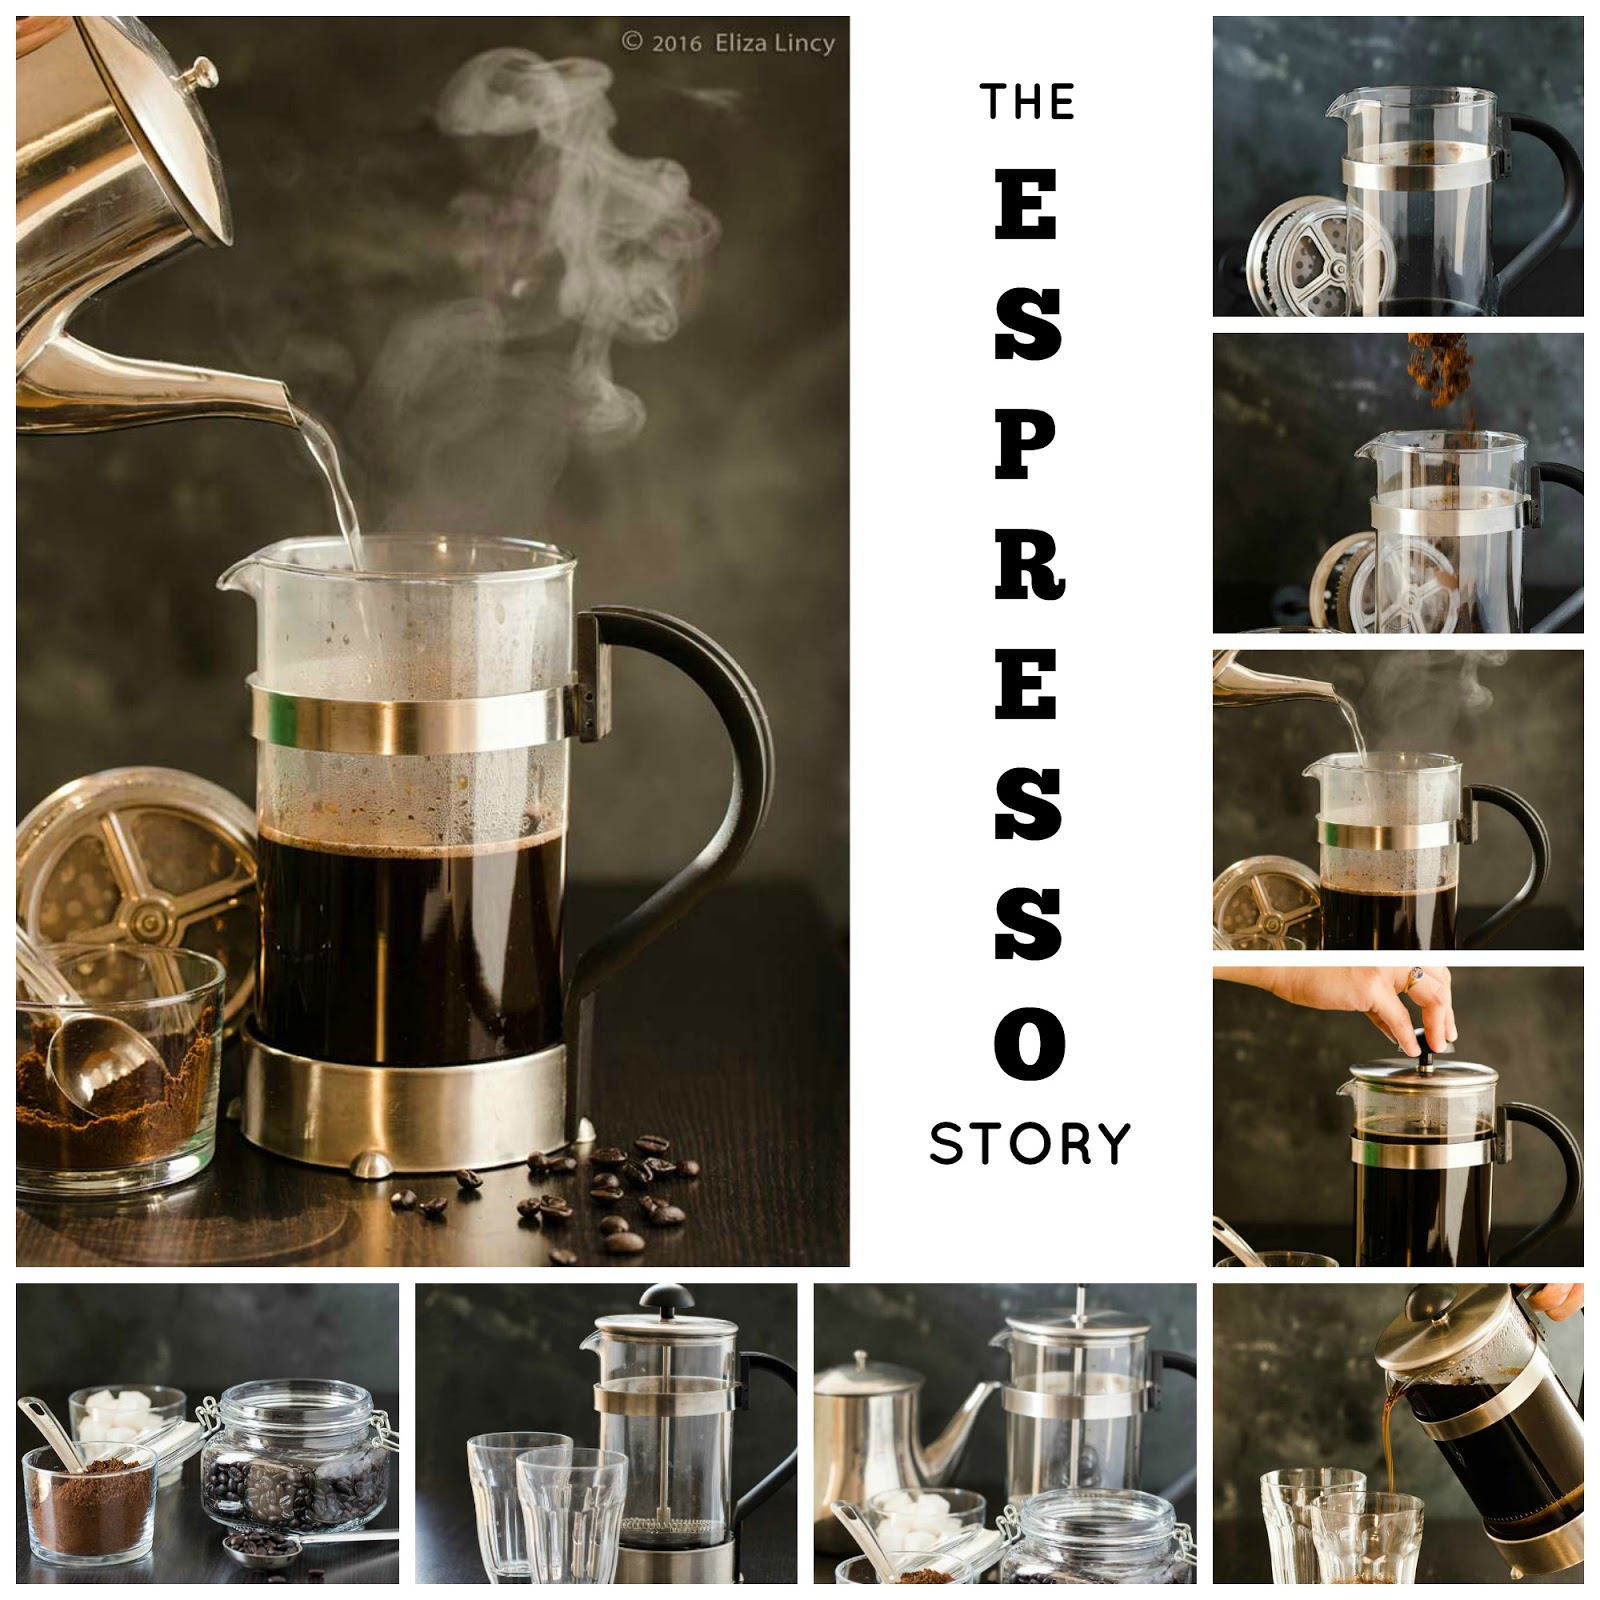 Espresso making using french press